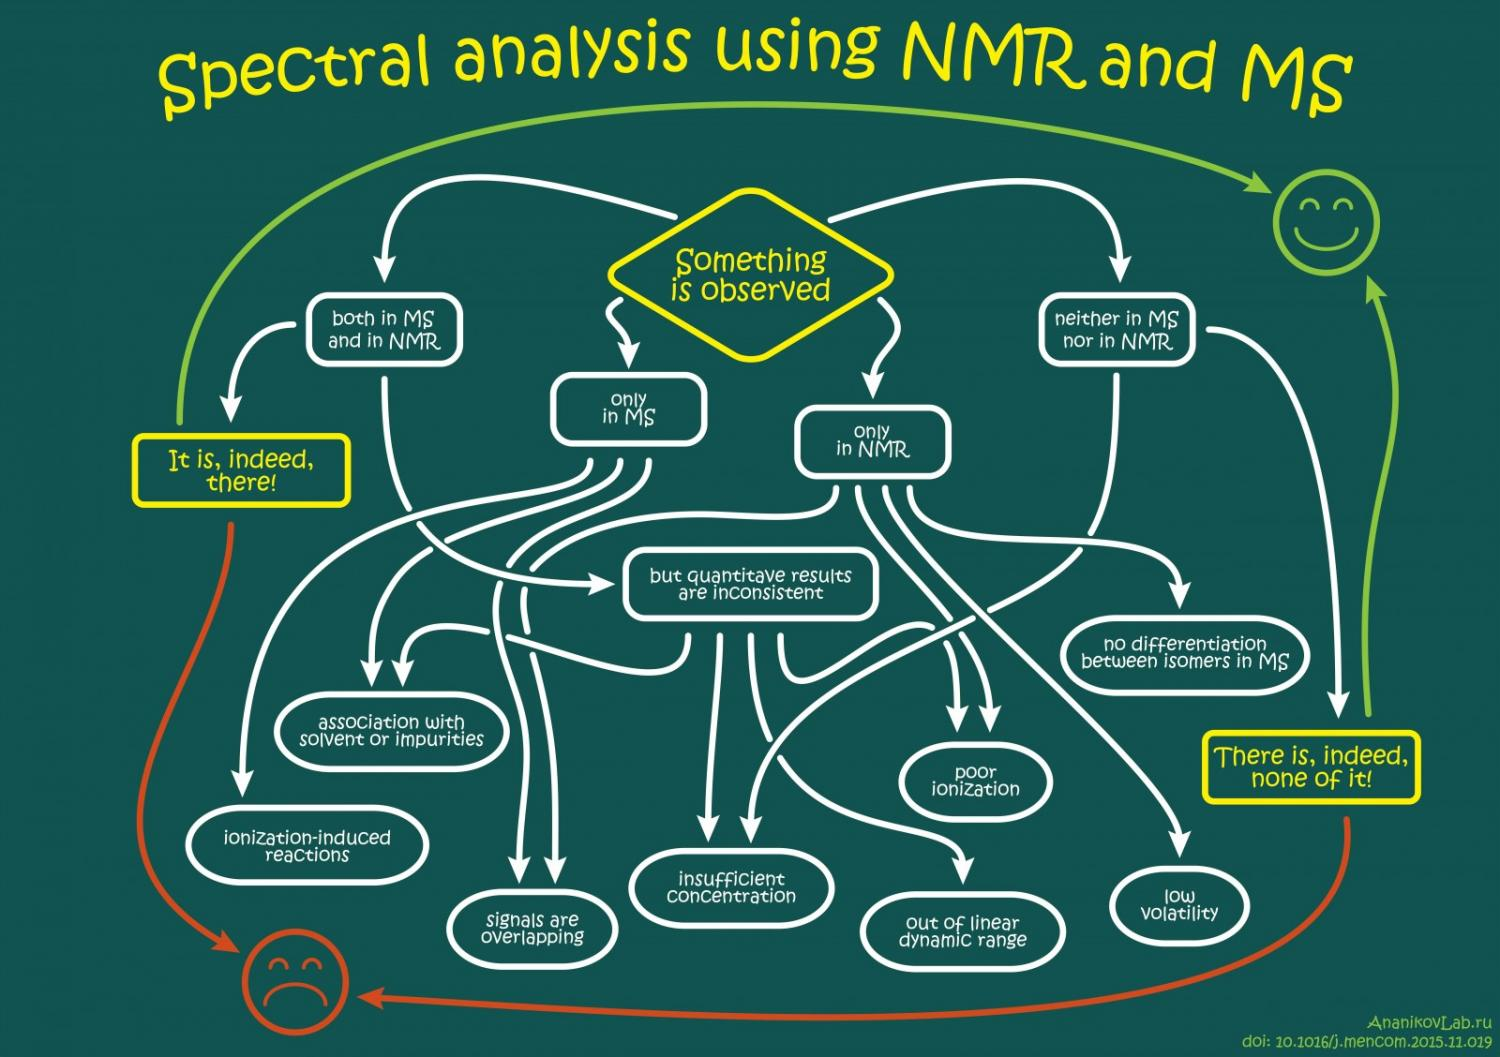 How Sensitive And Accurate Are Routine Nmr And Ms Instruments